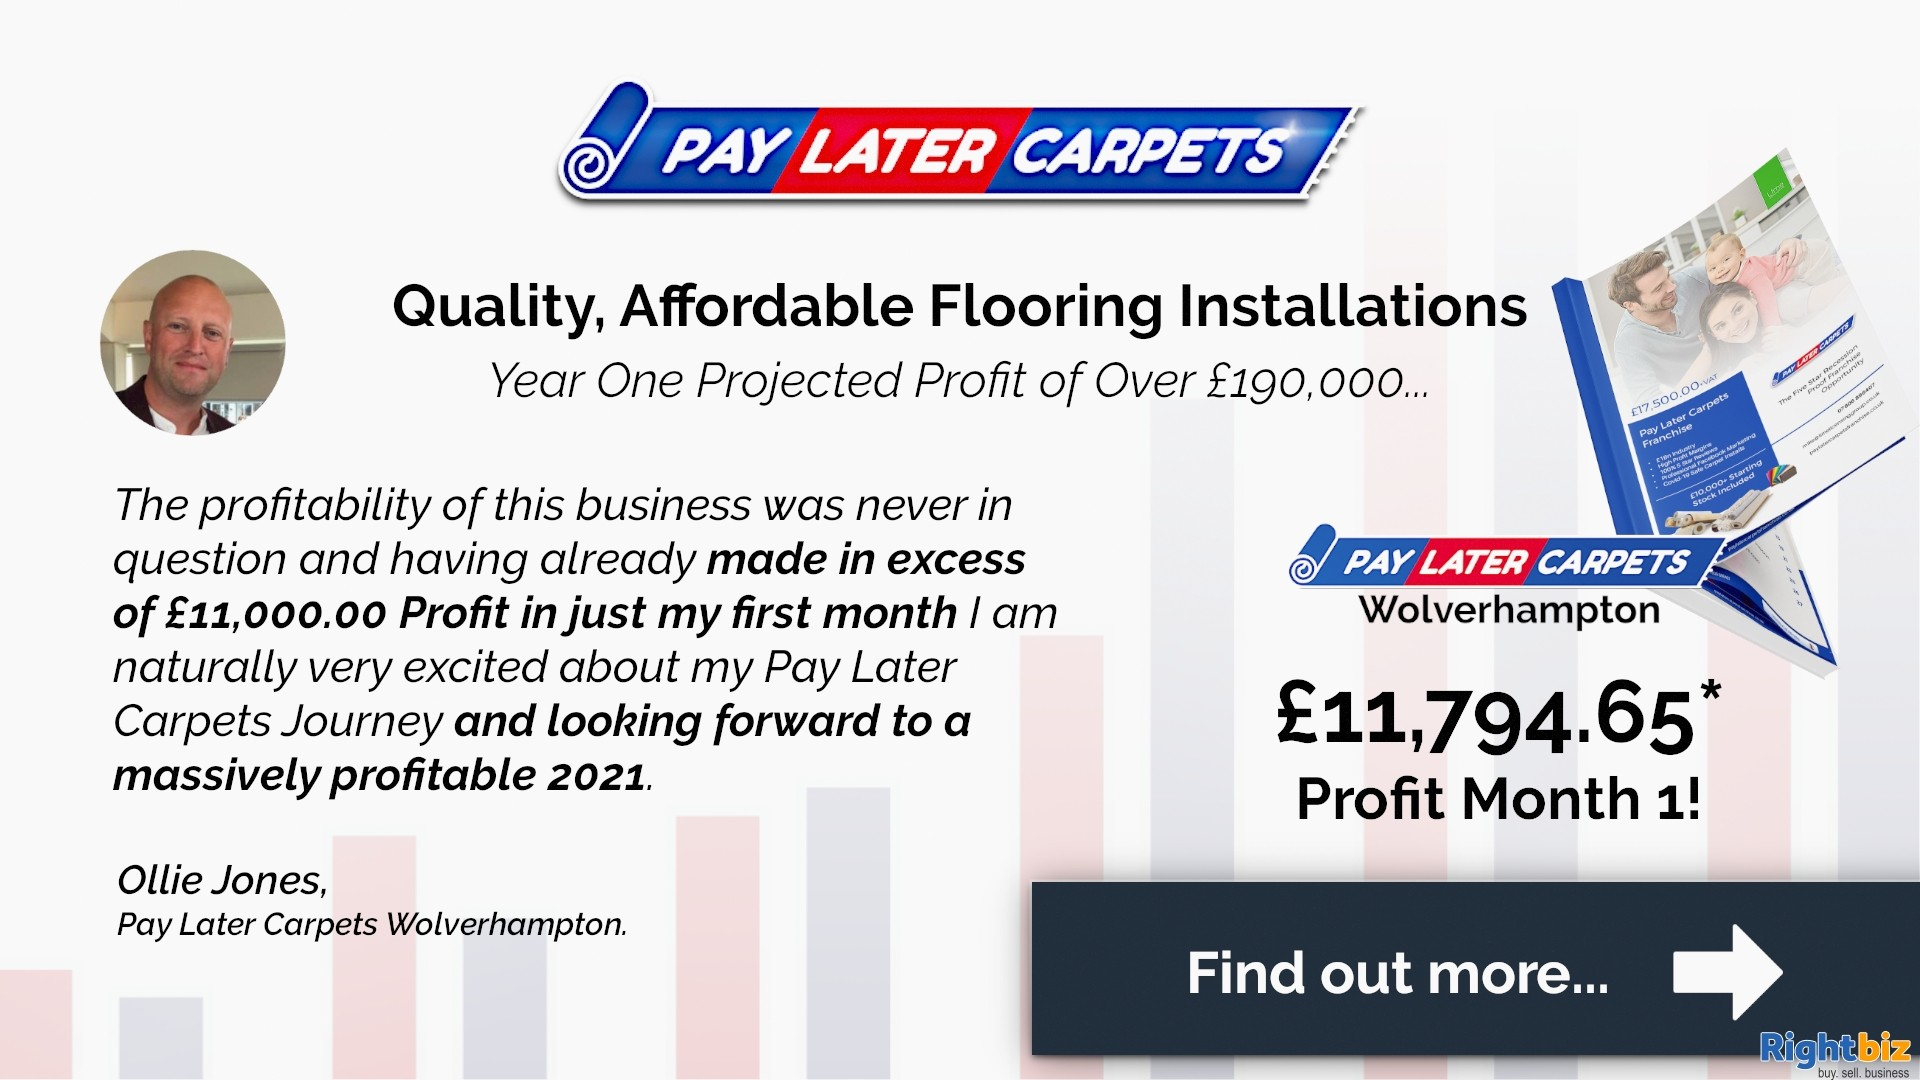 Pay Later Carpets Franchise Derry Our First Franchisee Made £11,000+ Profit in Month One - Image 1